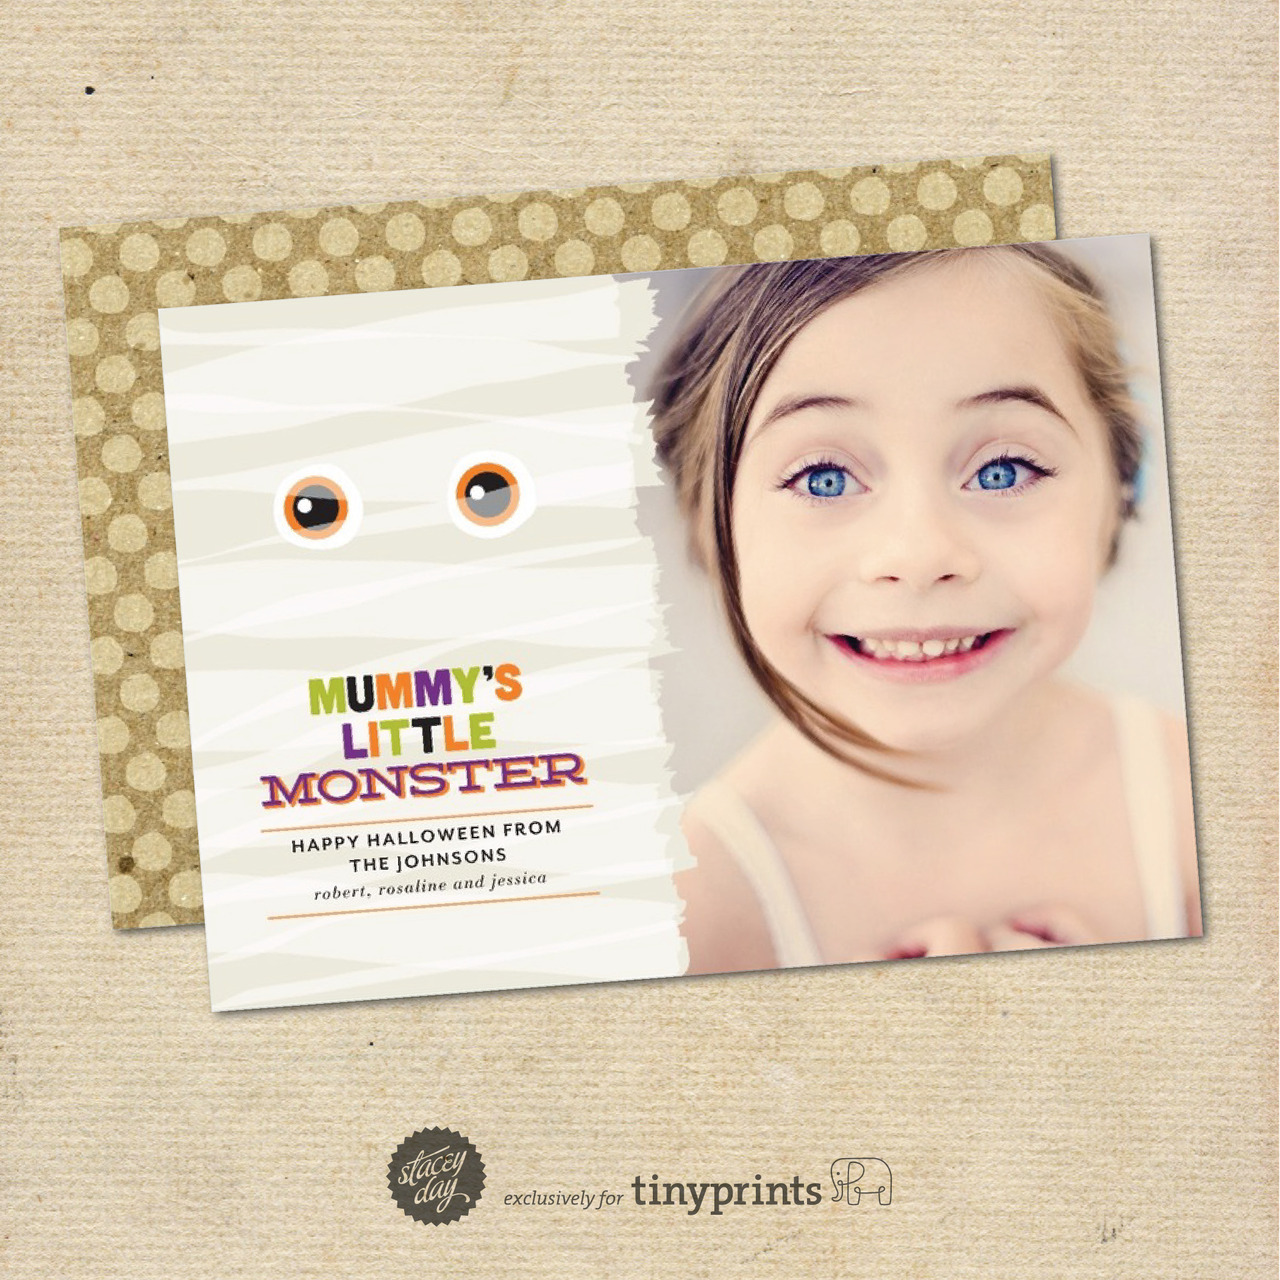 NEW RELEASE : MUMMY'S MONSTER Sending a photo card to your family and friends does not have to be limited to Christmas. Why not send a cute photo of your kiddo for all the holidays throughout the year? This card design, Mummy's Monster, would look so cute with a photo of your little monster. There are also matching address labels and gift tags to go with it. Gift tags are perfect for party favors or even the goodies you hand out for trick-or-treating. These designs are now available exclusively at Tiny Prints.